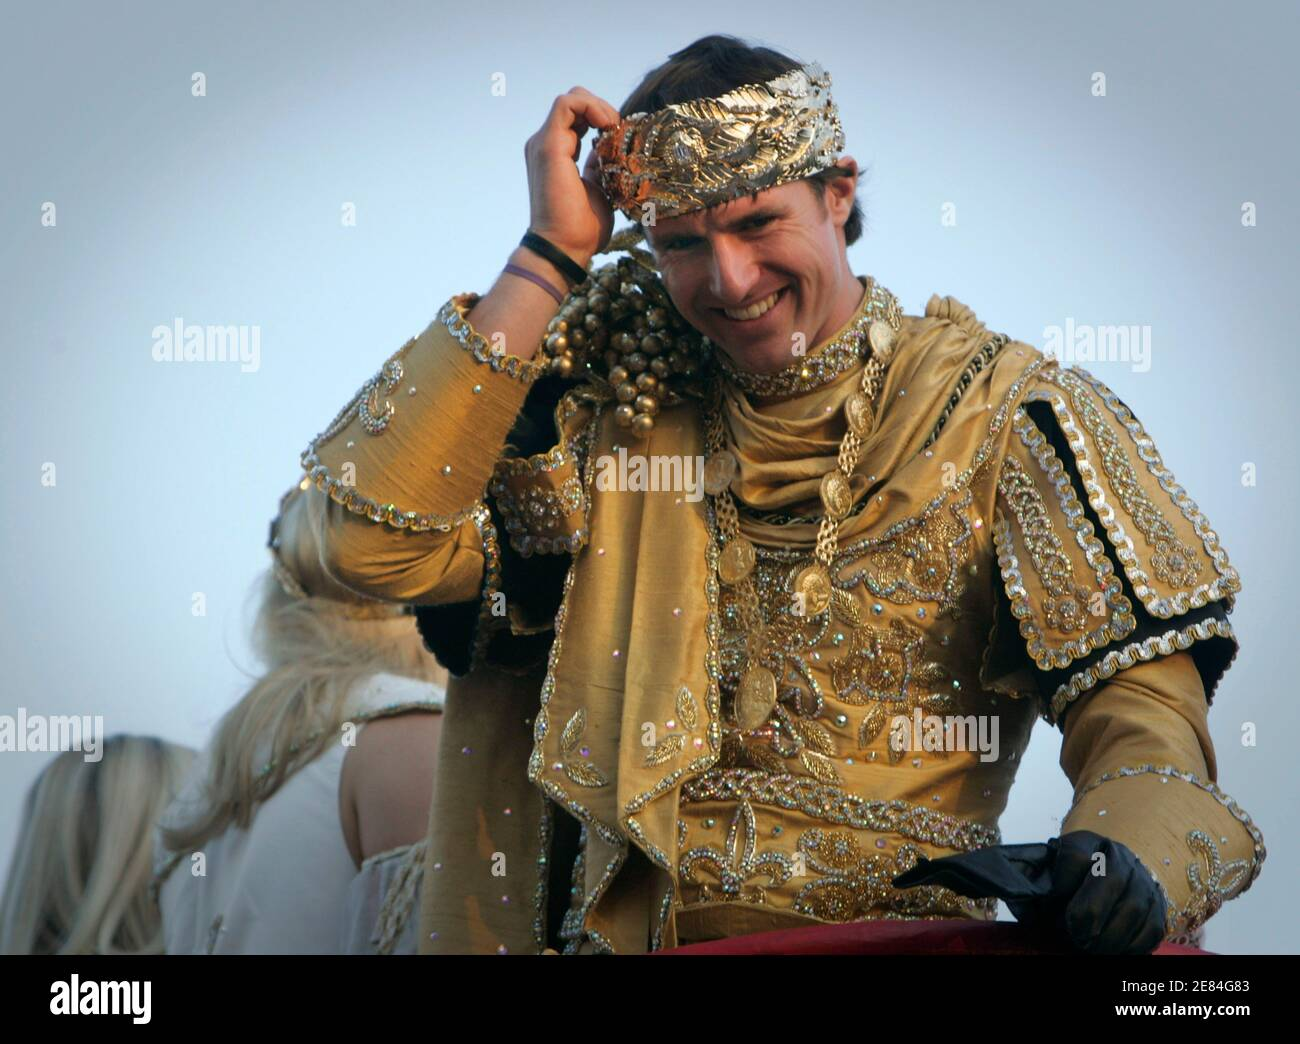 New Orleans Saints' quarterback Drew Brees, dressed as King of Bacchus, looks over the crowd during the Bacchus Mardi Gras parade in New Orleans, Louisiana February 14, 2010. REUTERS/Lee Celano (UNITED STATES - Tags: SPORT FOOTBALL SOCIETY) Stock Photo